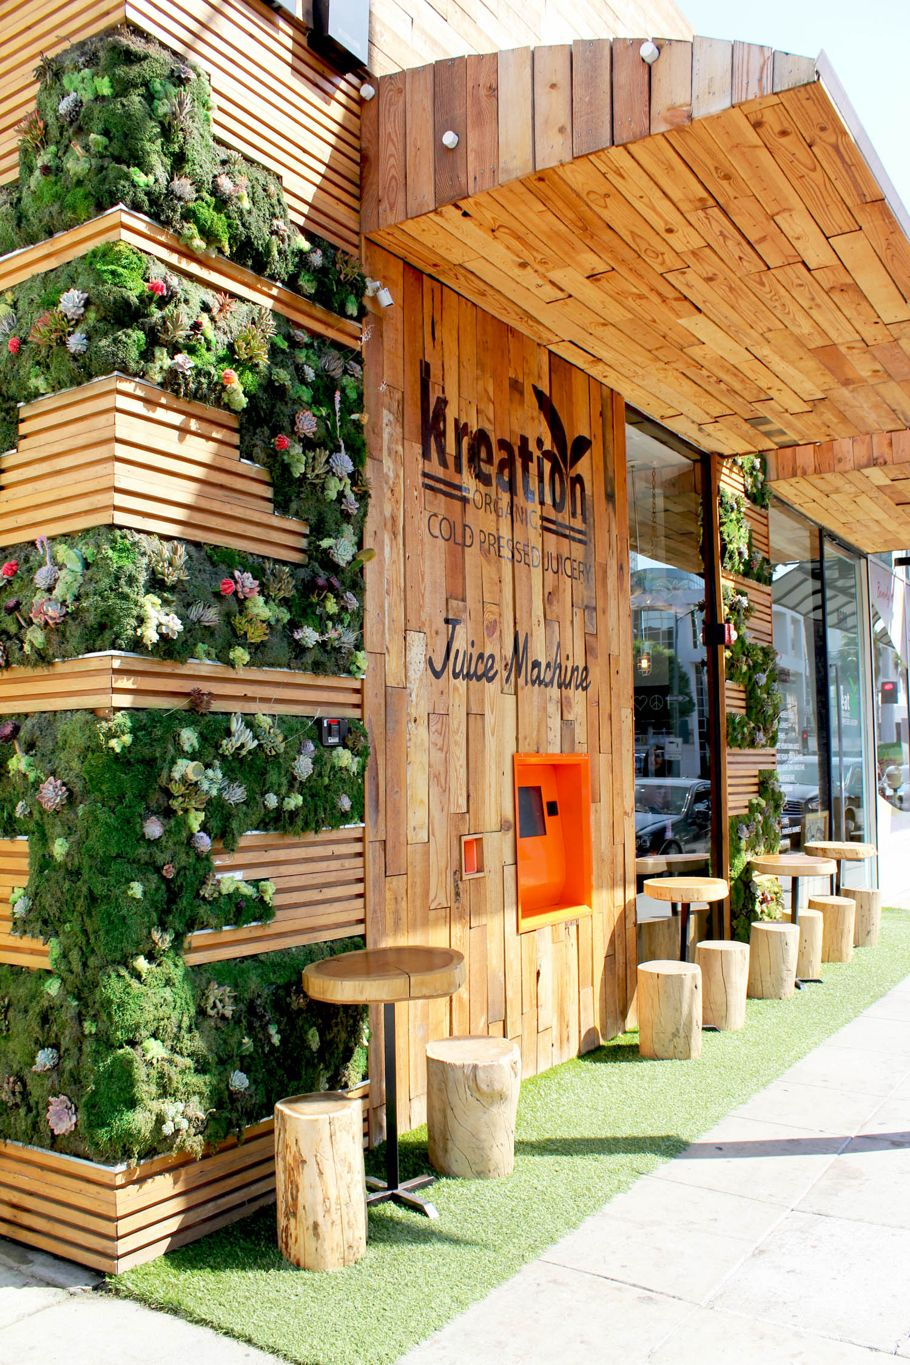 Kreation juice shopfront timber greenery